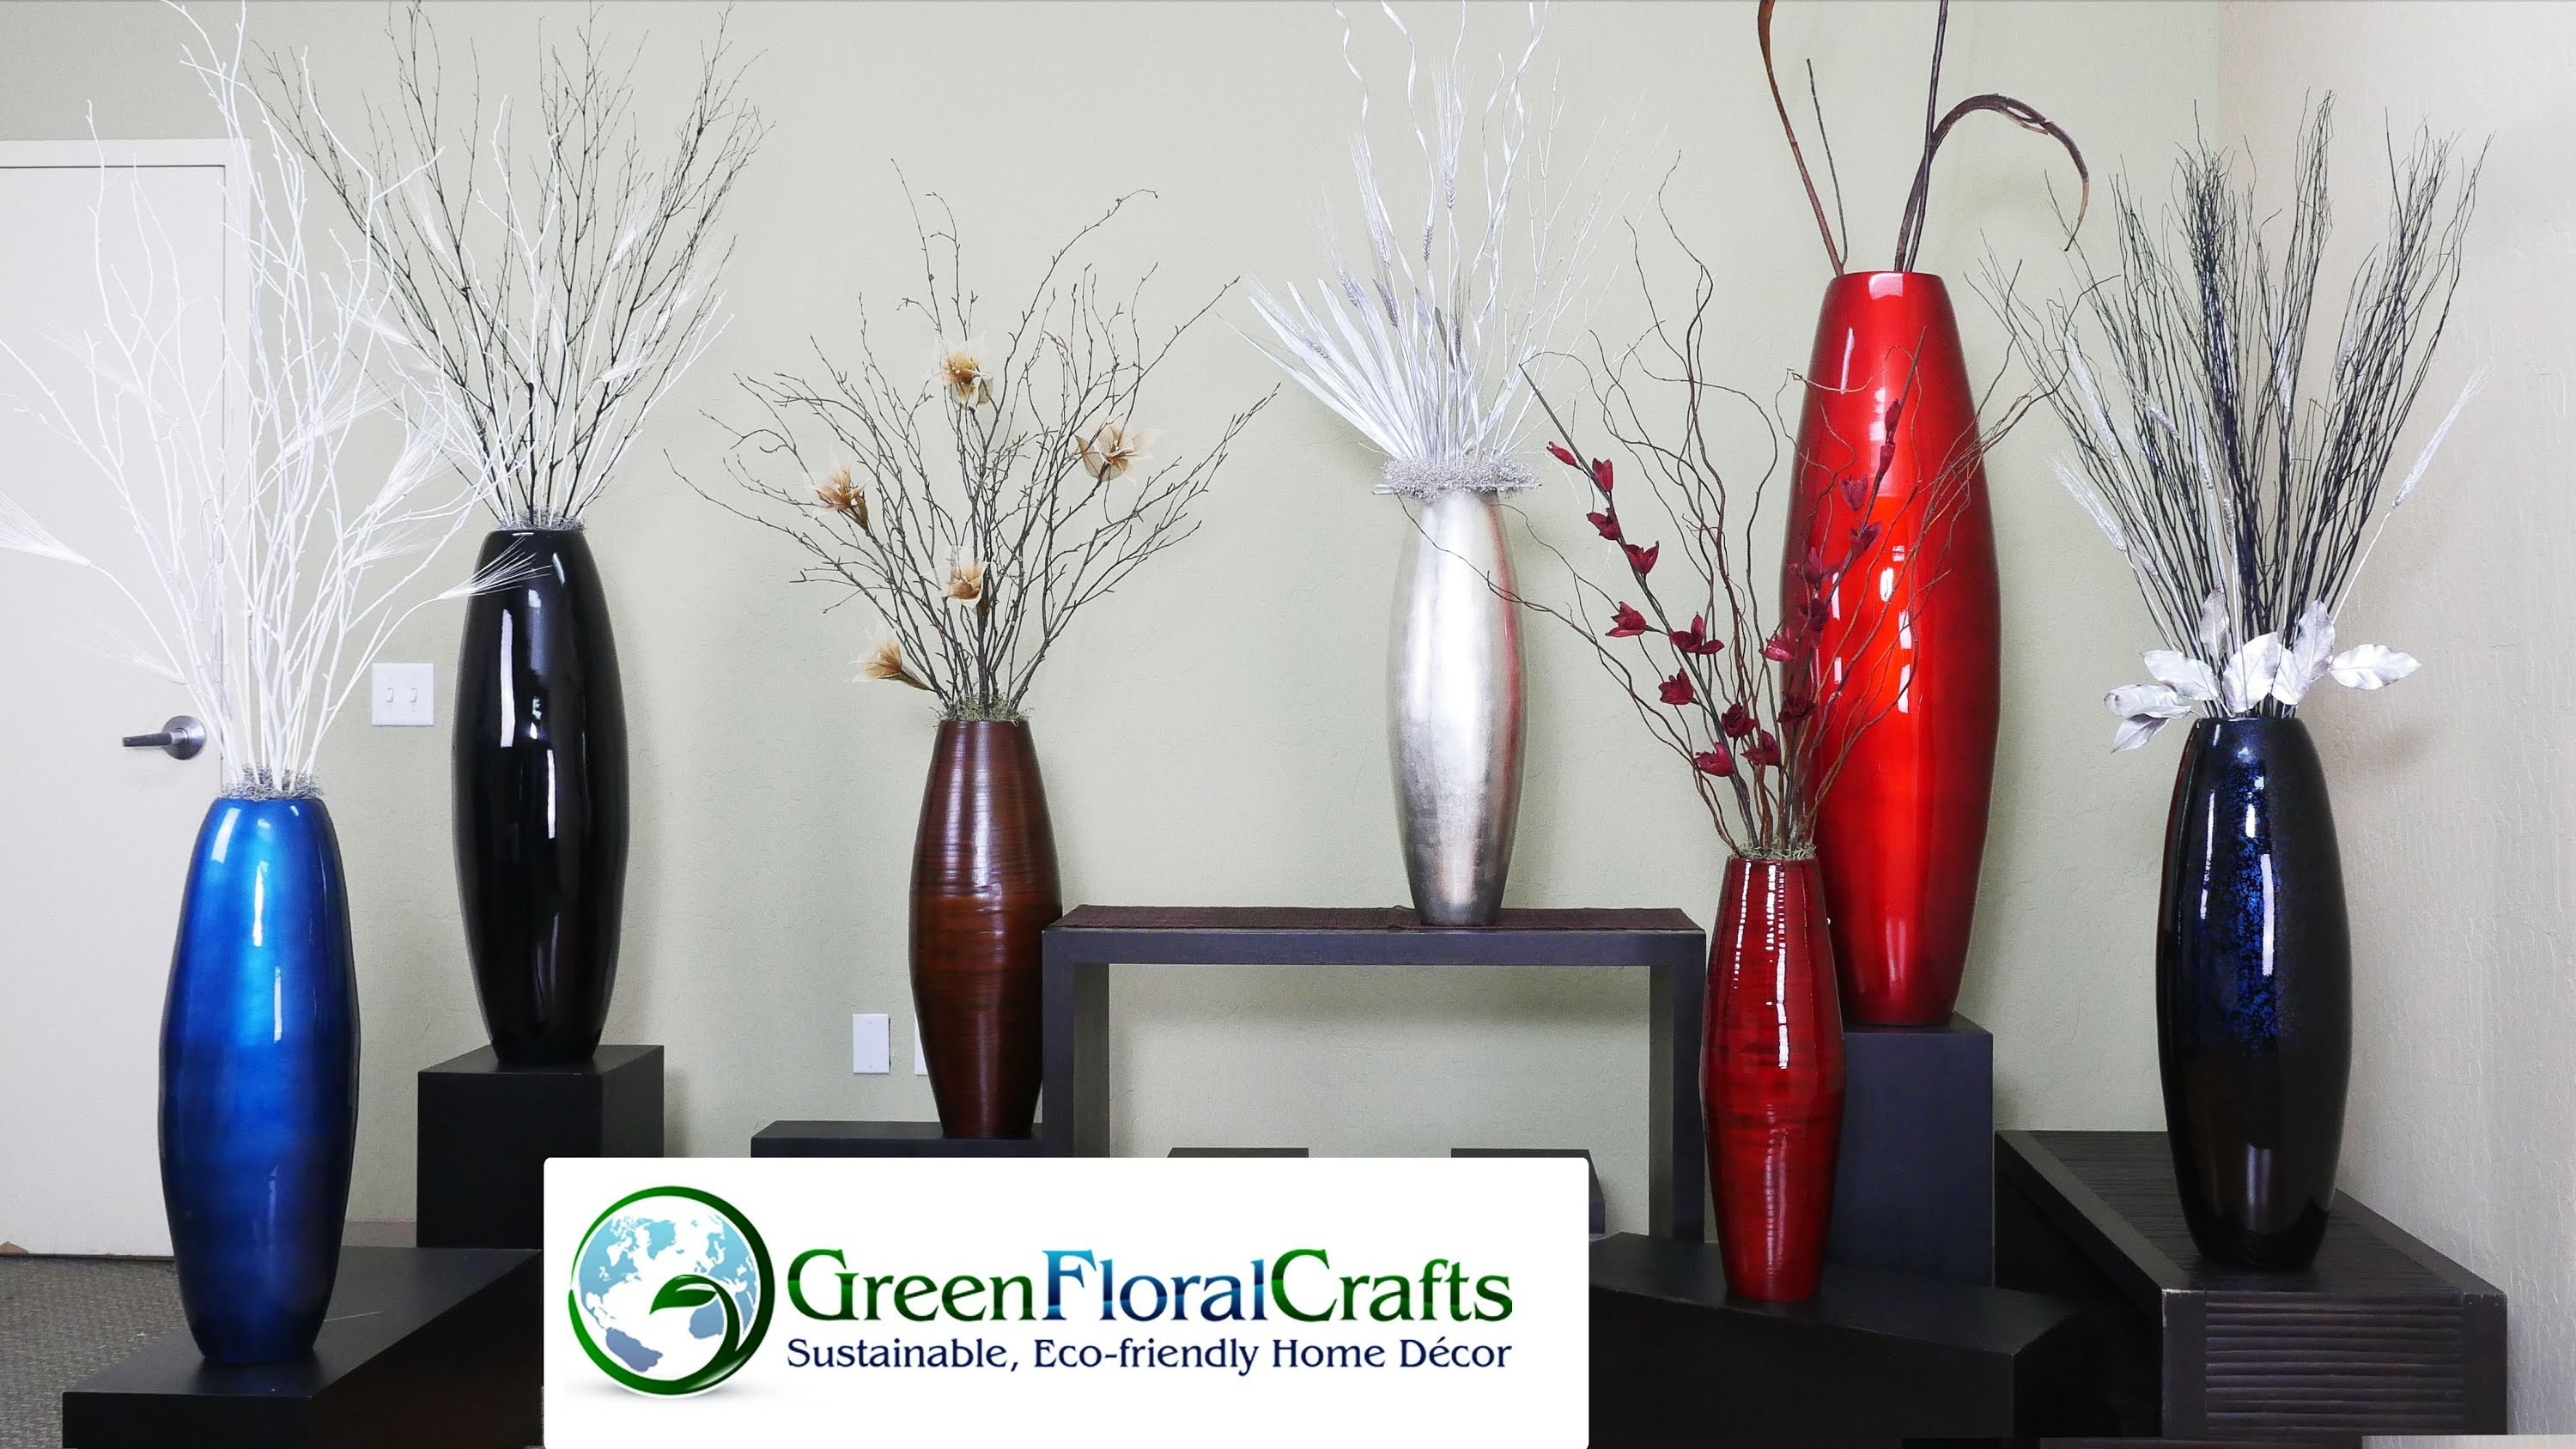 houzz decorative vases of 24 elegant decorating ideas for tall vases badt us within decorating ideas for tall vases best of decoration ideas sweet dining room using cylinder extra tall